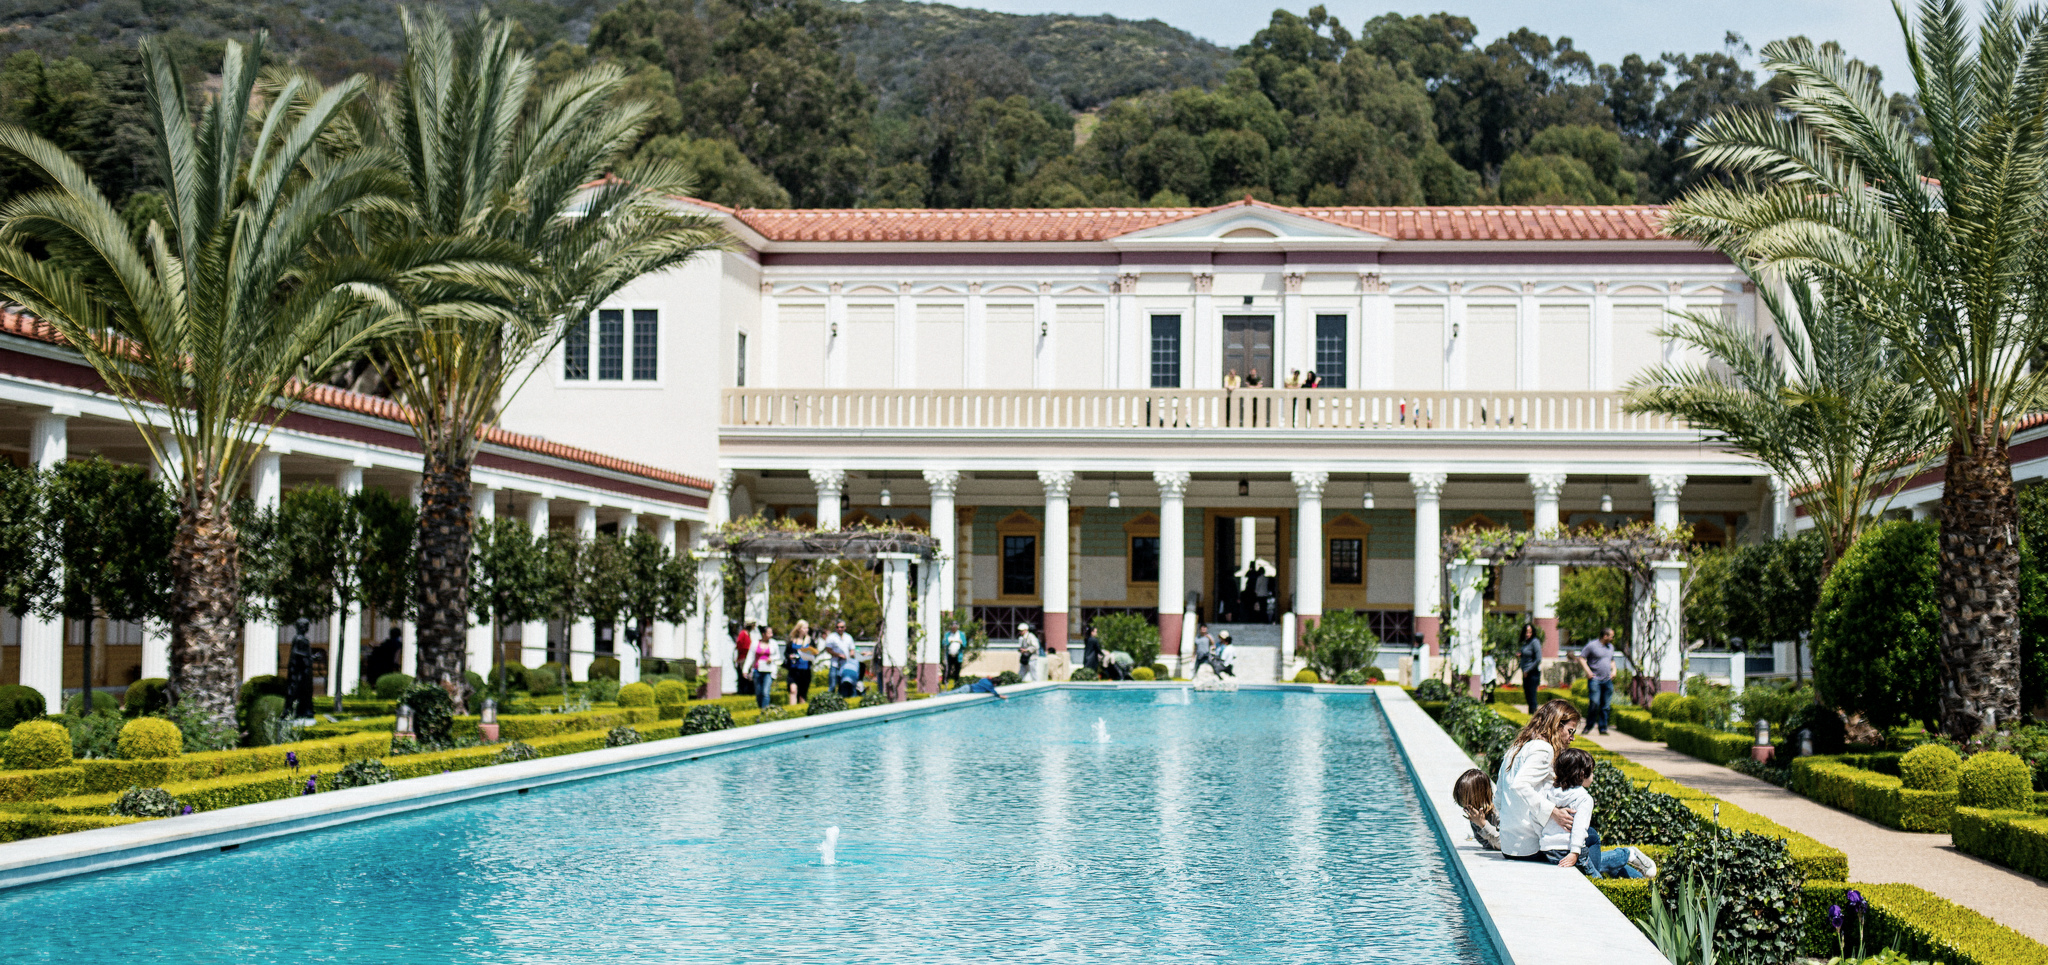 Getty Villa Los Angeles MYKITA Journal Photo By Thous And Wonders As